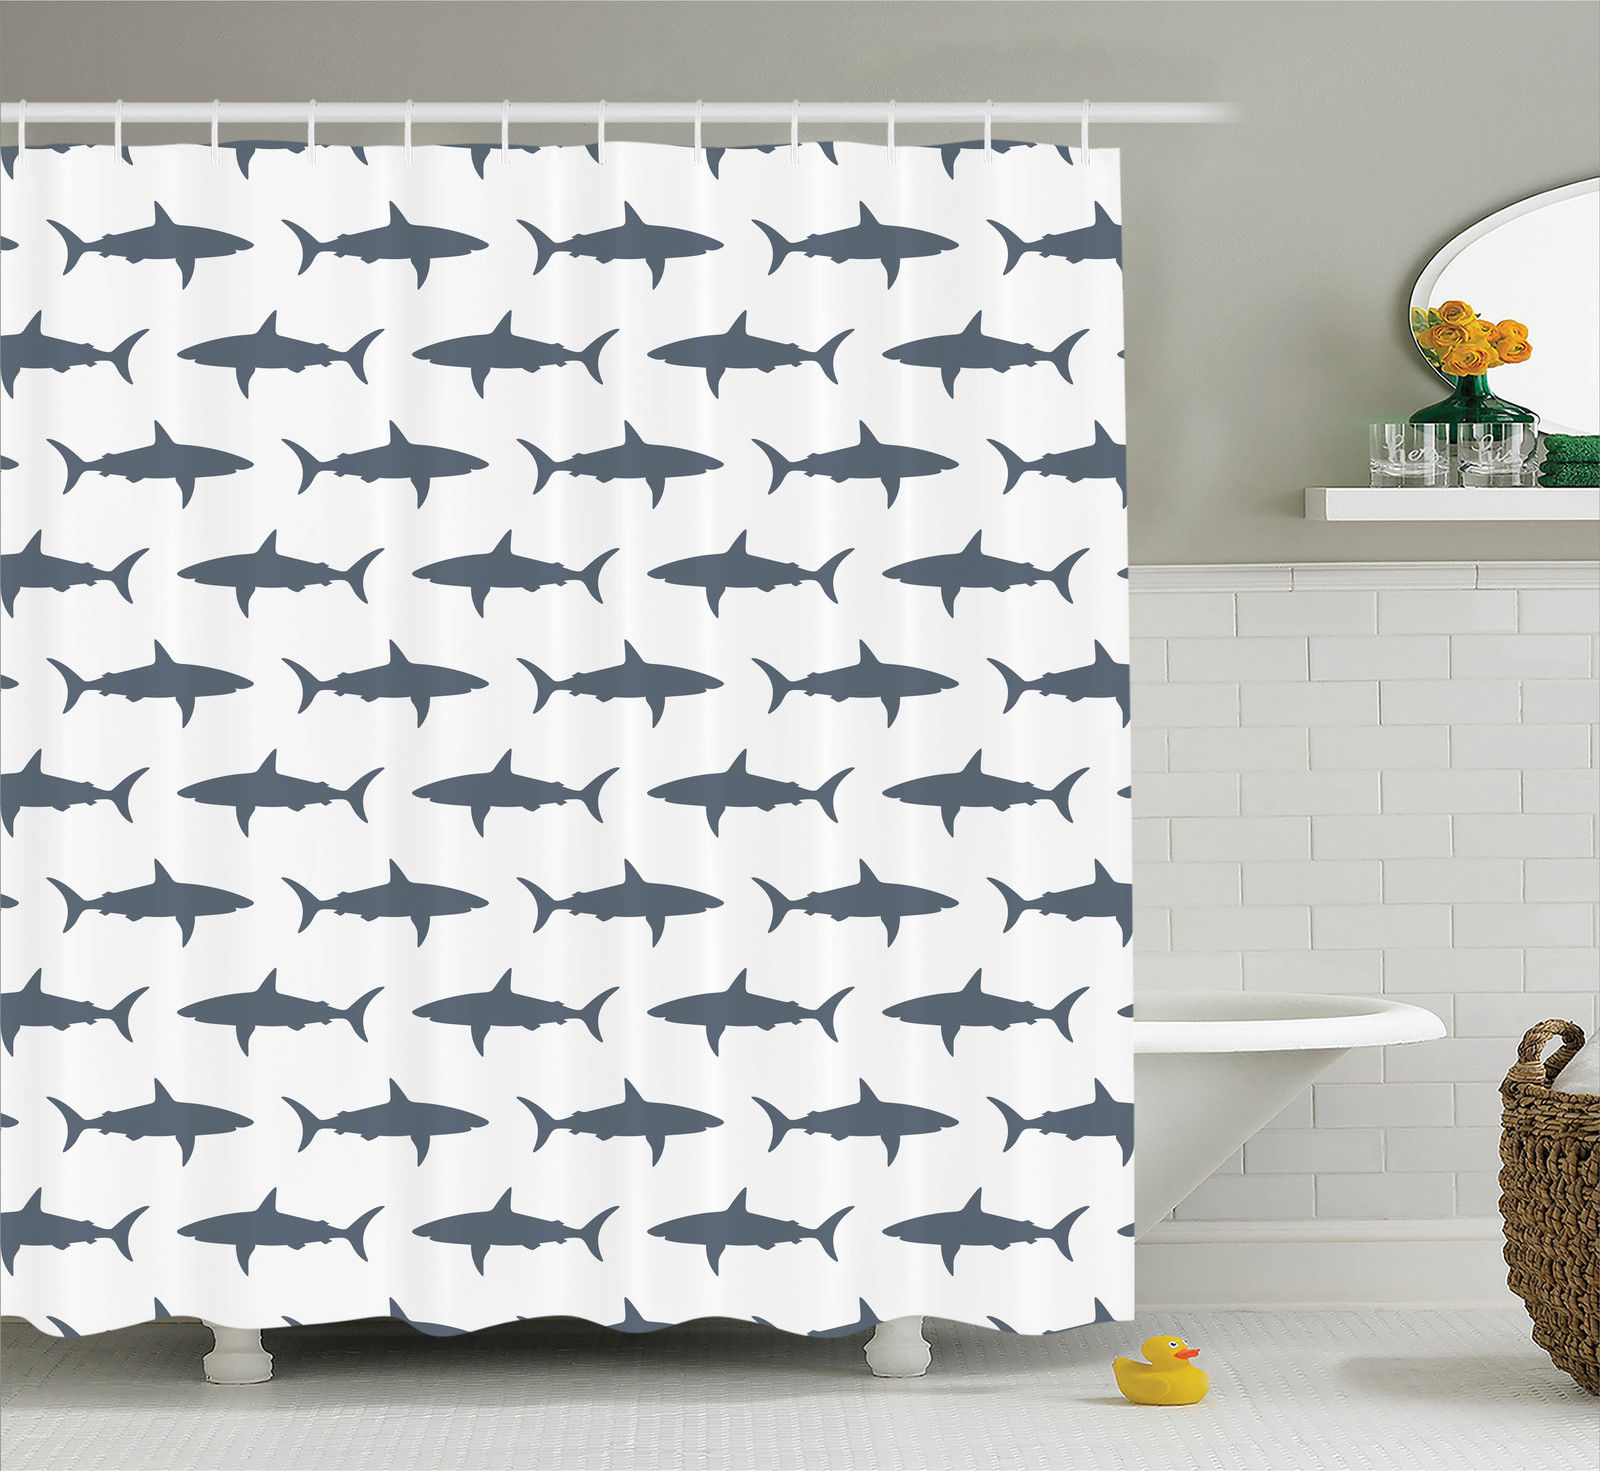 Sea Animals Decor  Sharks Swimming Horizontal Silhouettes...